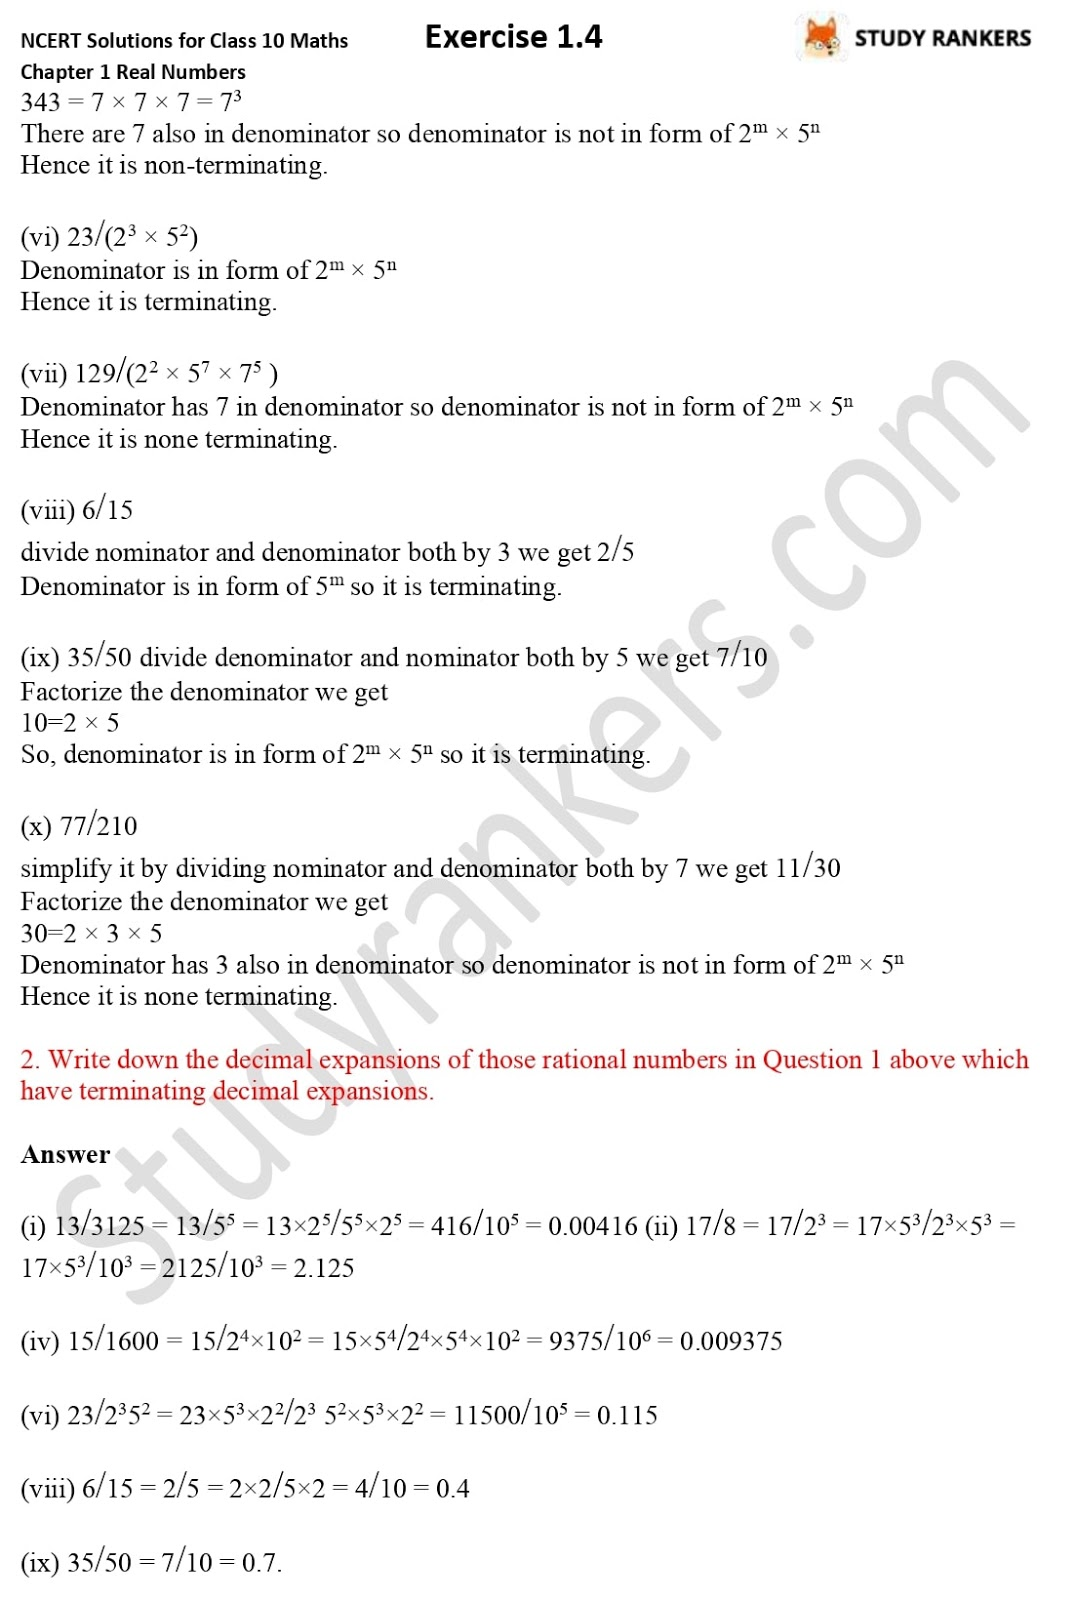 NCERT Solutions for Class 10 Maths Chapter 1 Real Numbers Exercise 1.4 2